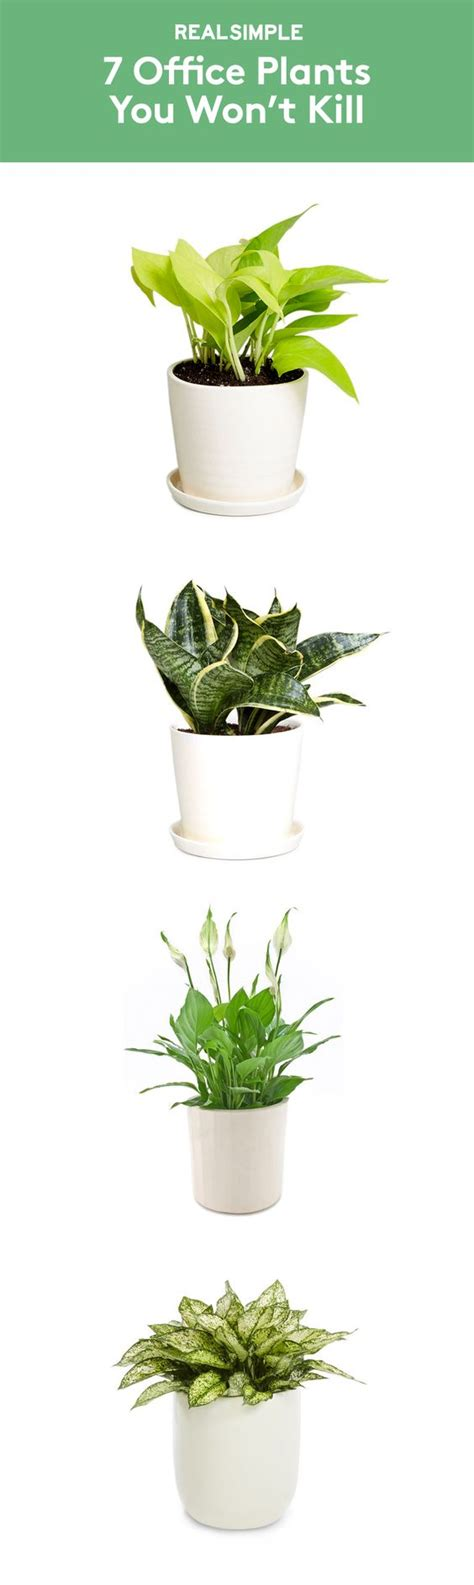 good office plants 7 office plants you won t kill kantoren planten en